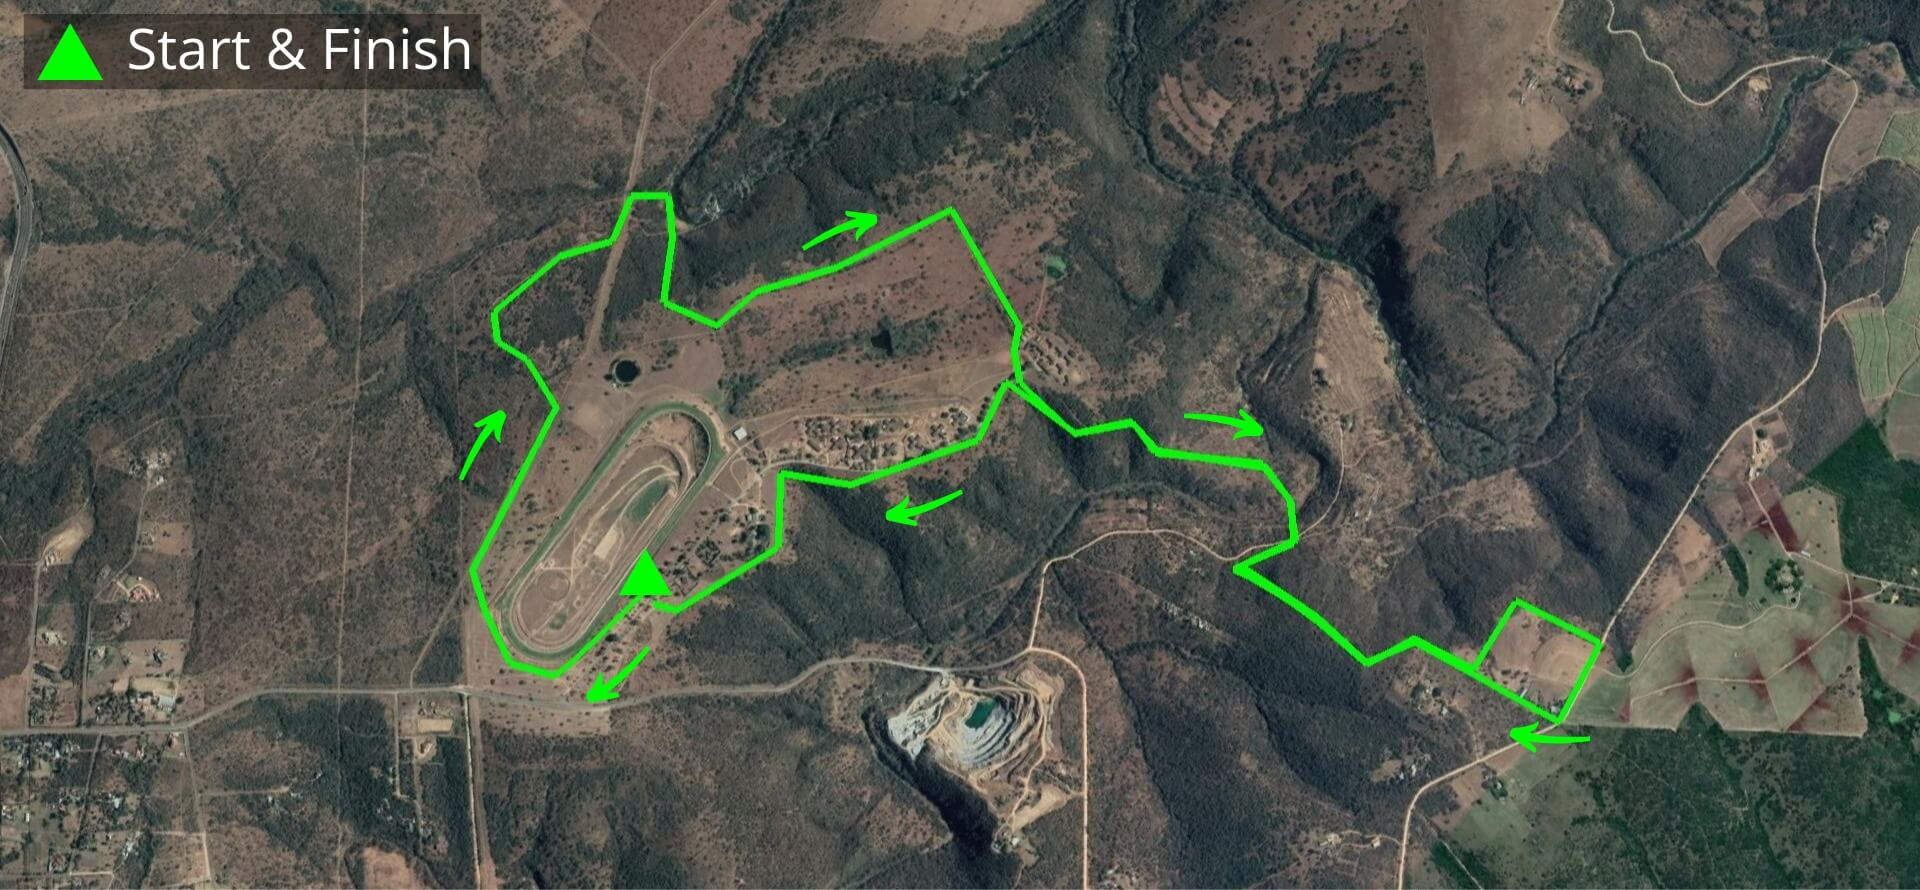 KZNTR Winter Series Dusi Trails May20 - 12km Course Route (Directioned)